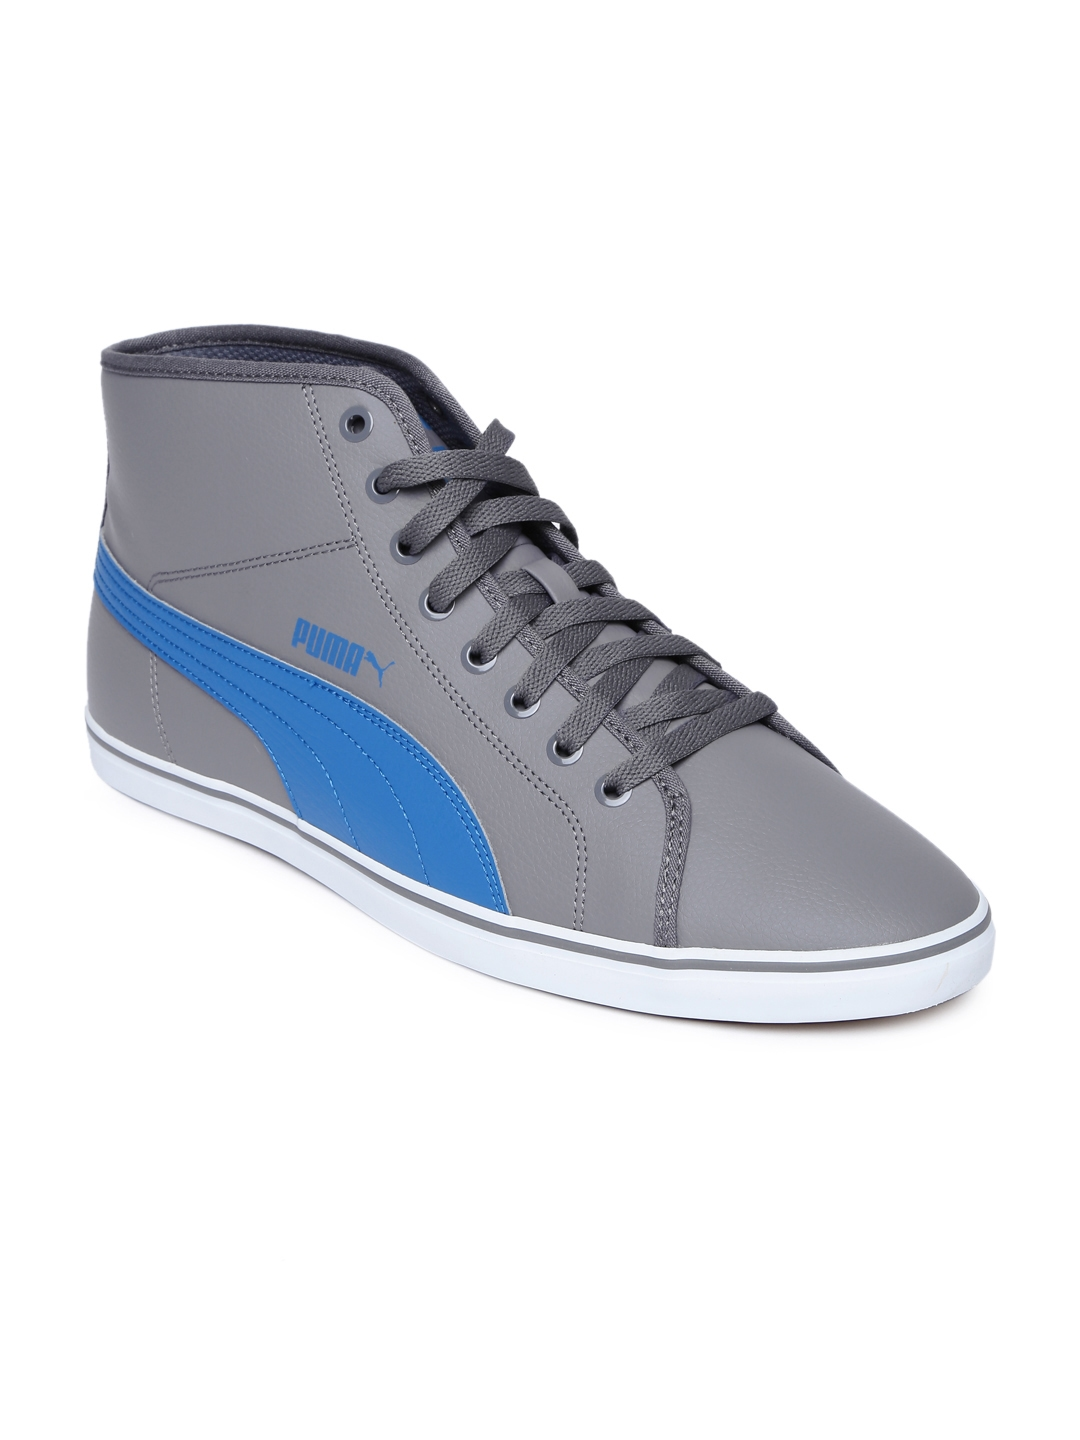 Buy Puma Men Grey Solid Synthetic Leather Elsu V2 Mid Top Sneakers ... 4094a2d42